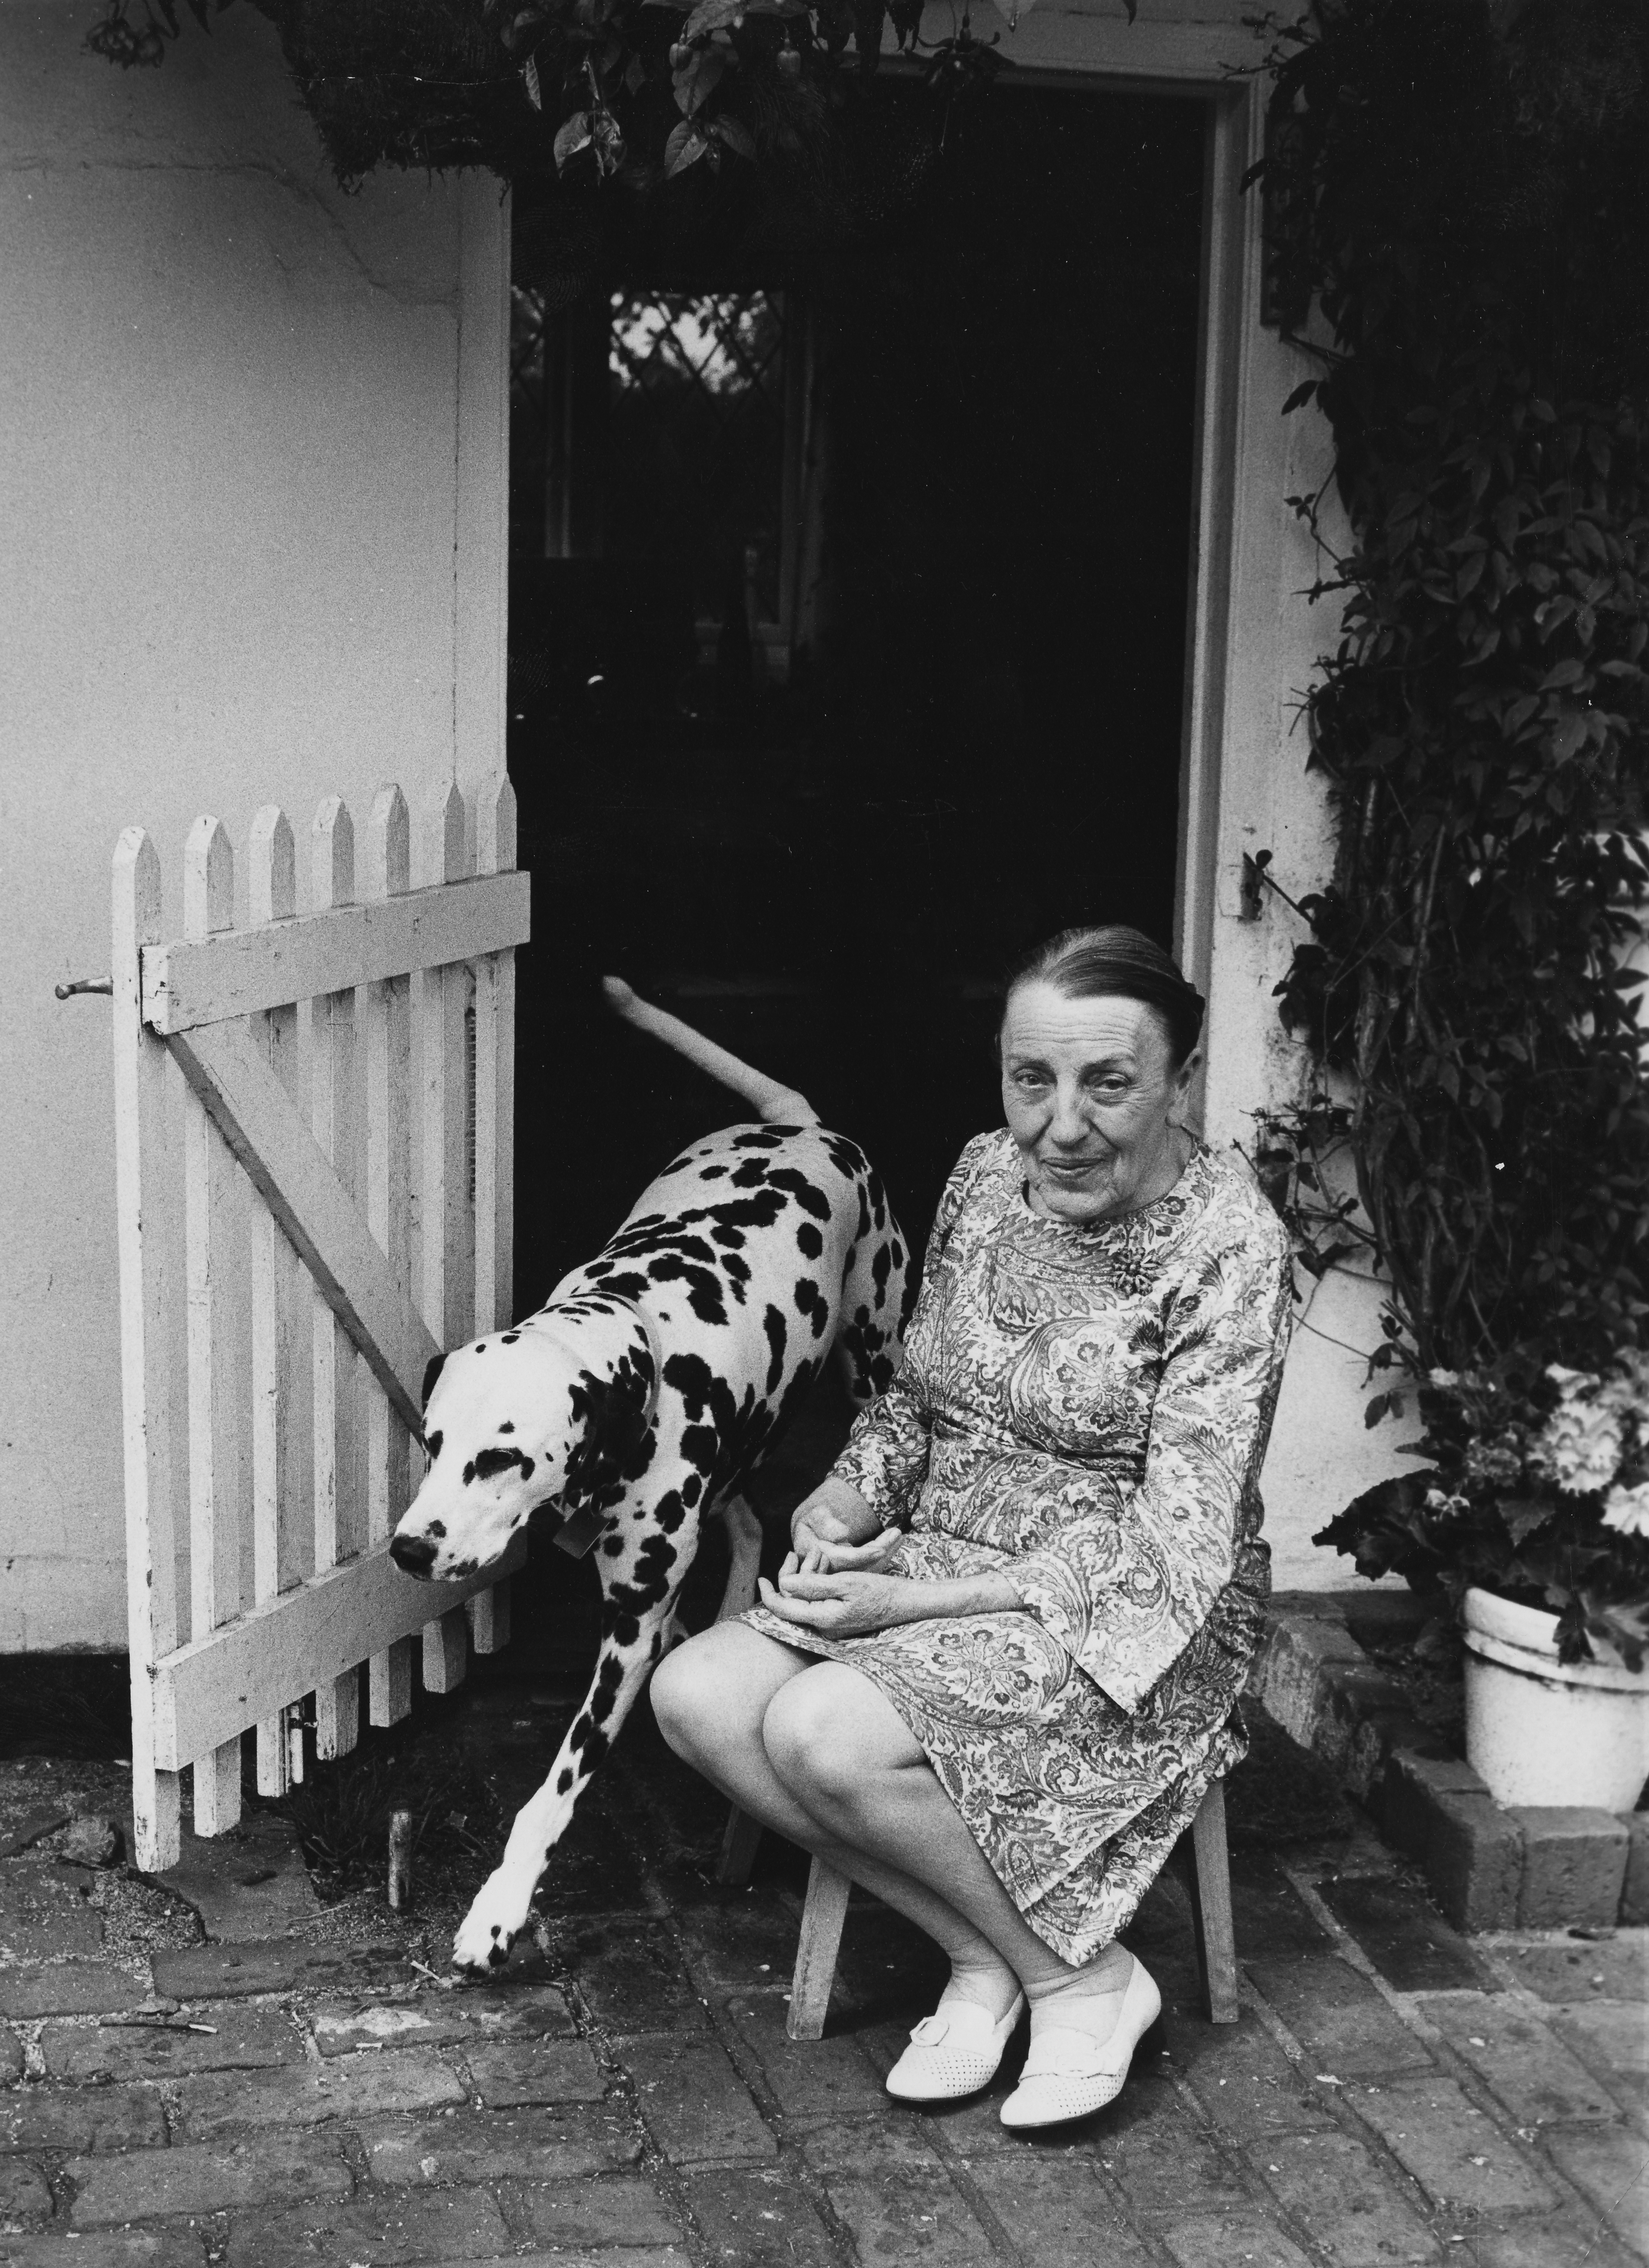 Dodie Smith, author of '101 Dalmatians', sitting outside her cottage with a pet Dalmatian in Essex, July 23, 1973